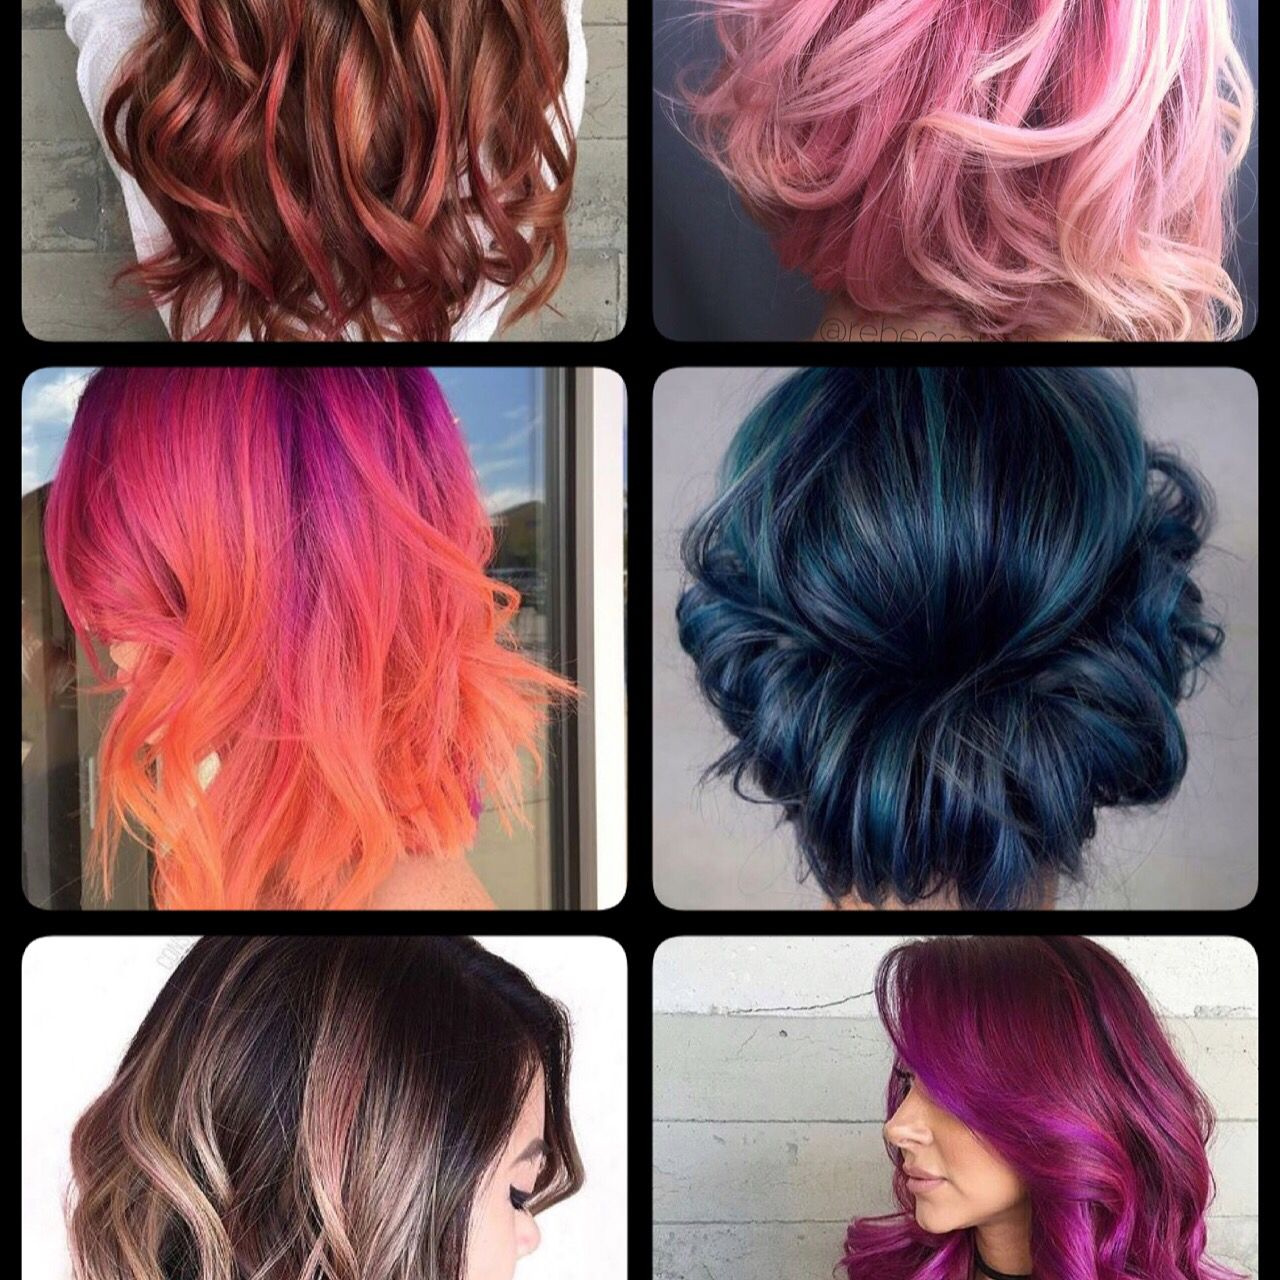 Have you thought about your autumn look? Natural or high fashion shades? Anything goes and we are willing, ready and able!!#autumn#fall#fashion#friday#love www.luciacsalon.com